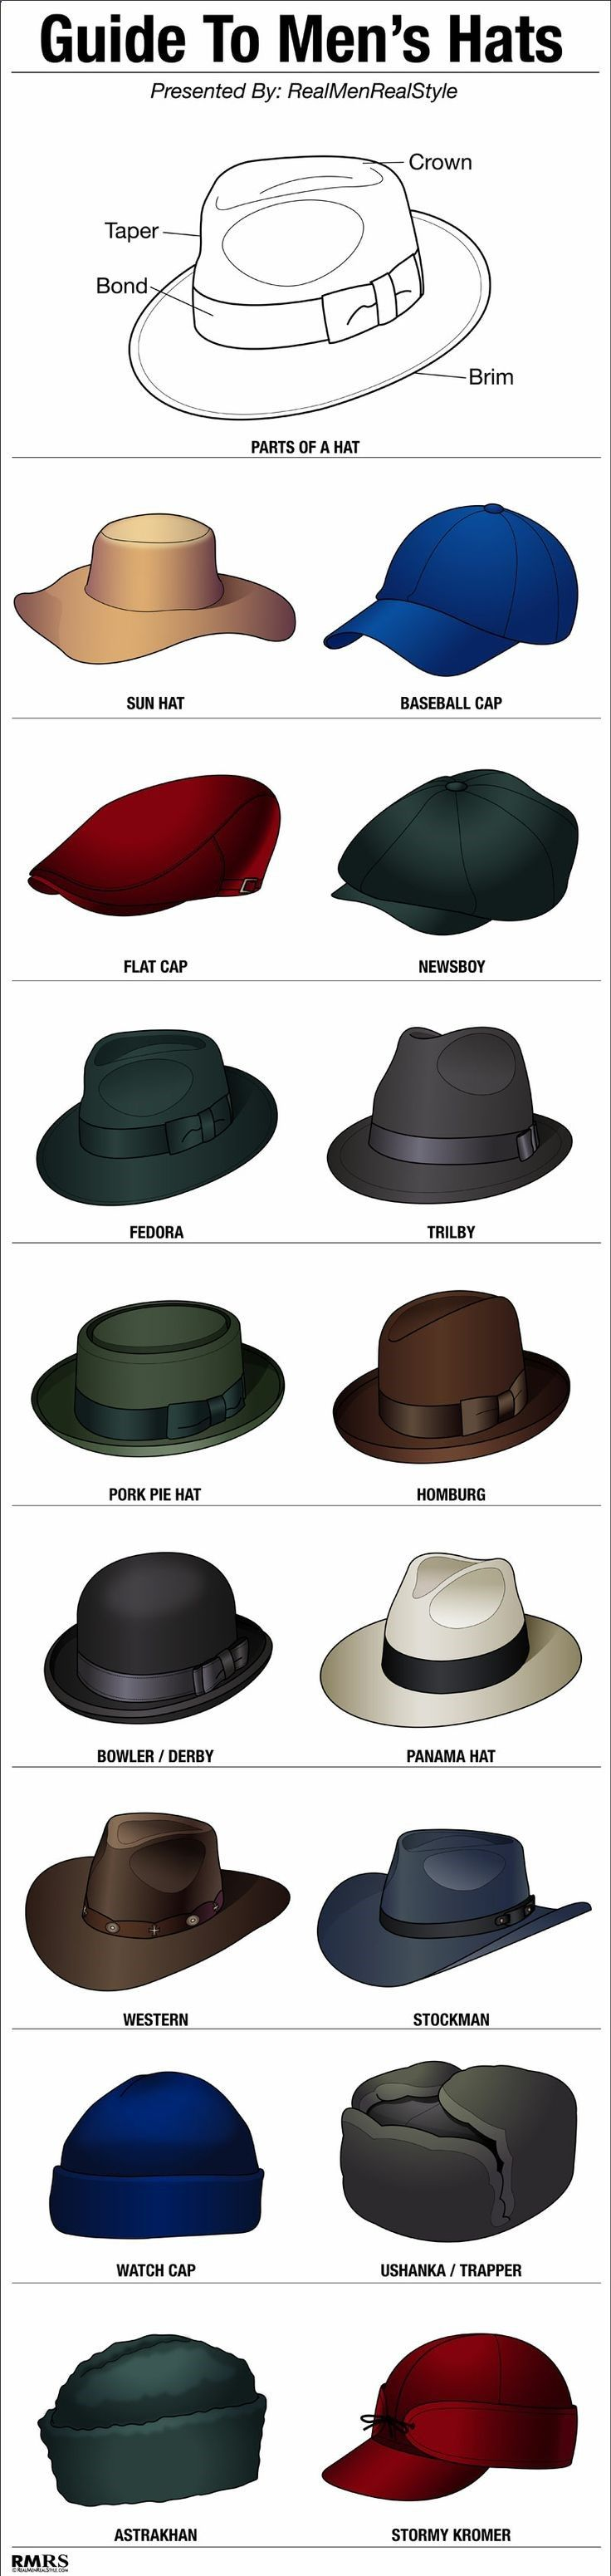 16 Stylish Mens Hats | Hat Style Guide | Mans Headwear Infographic